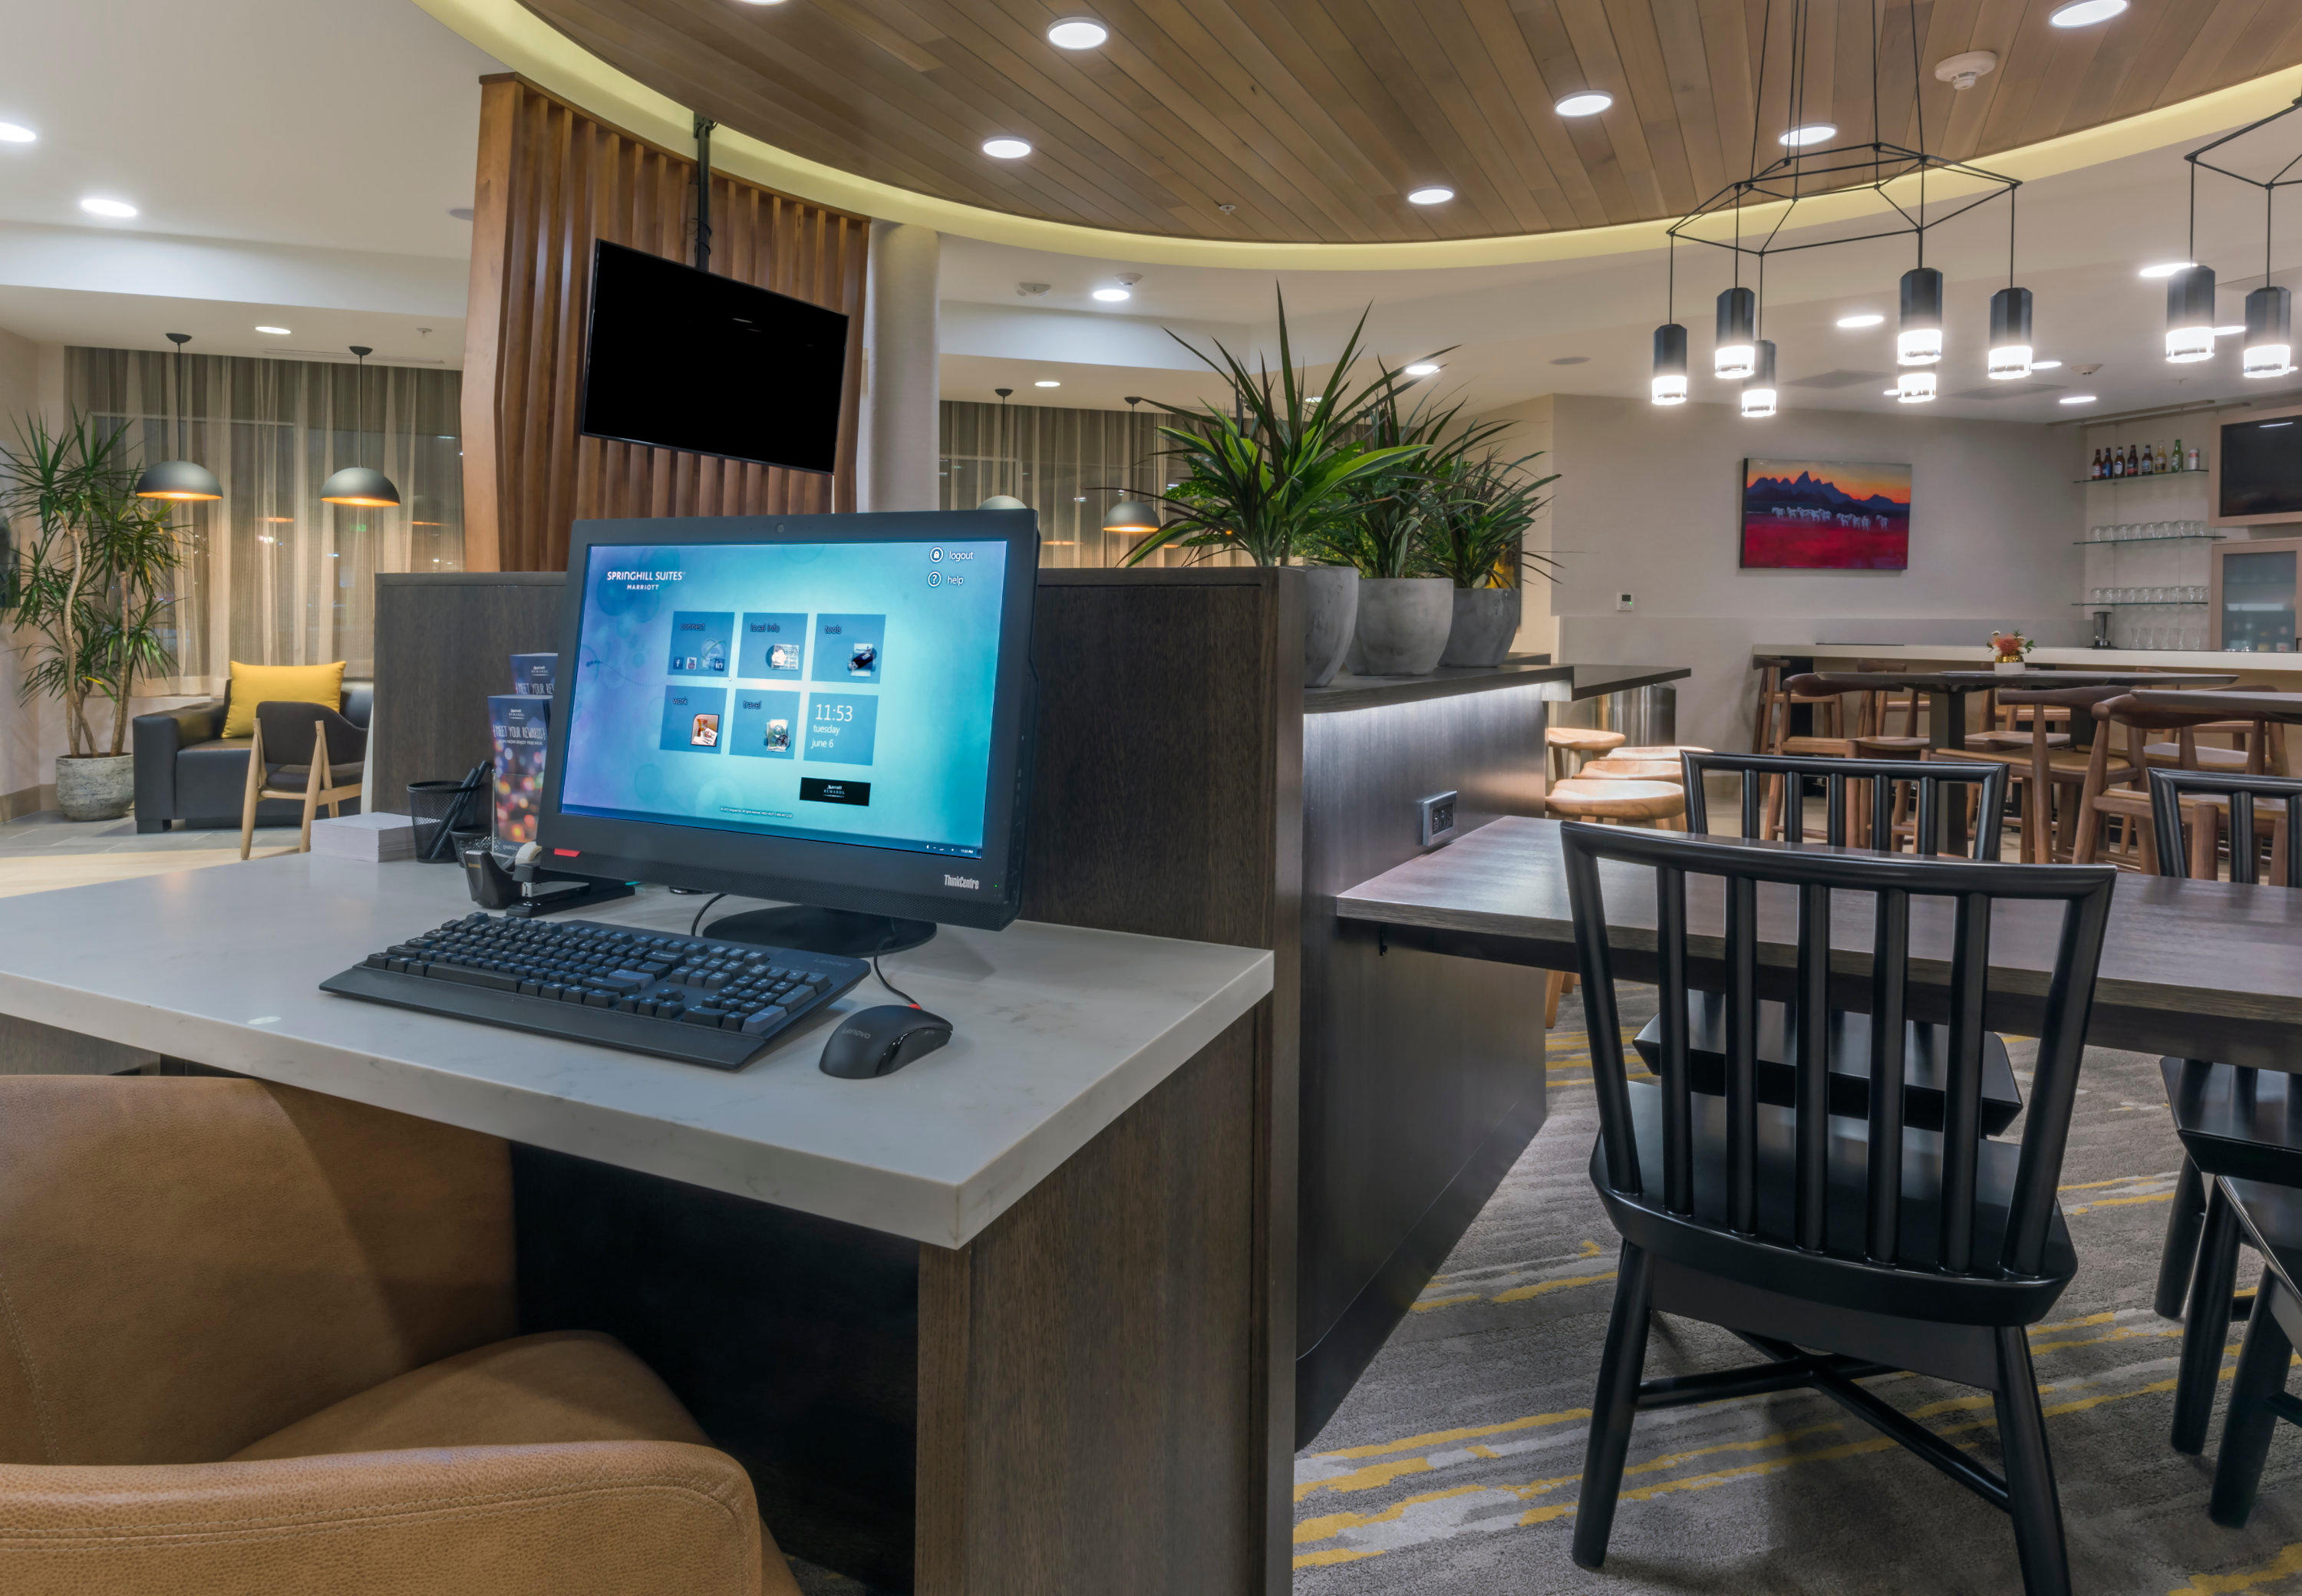 SpringHill Suites by Marriott Jackson Hole image 7